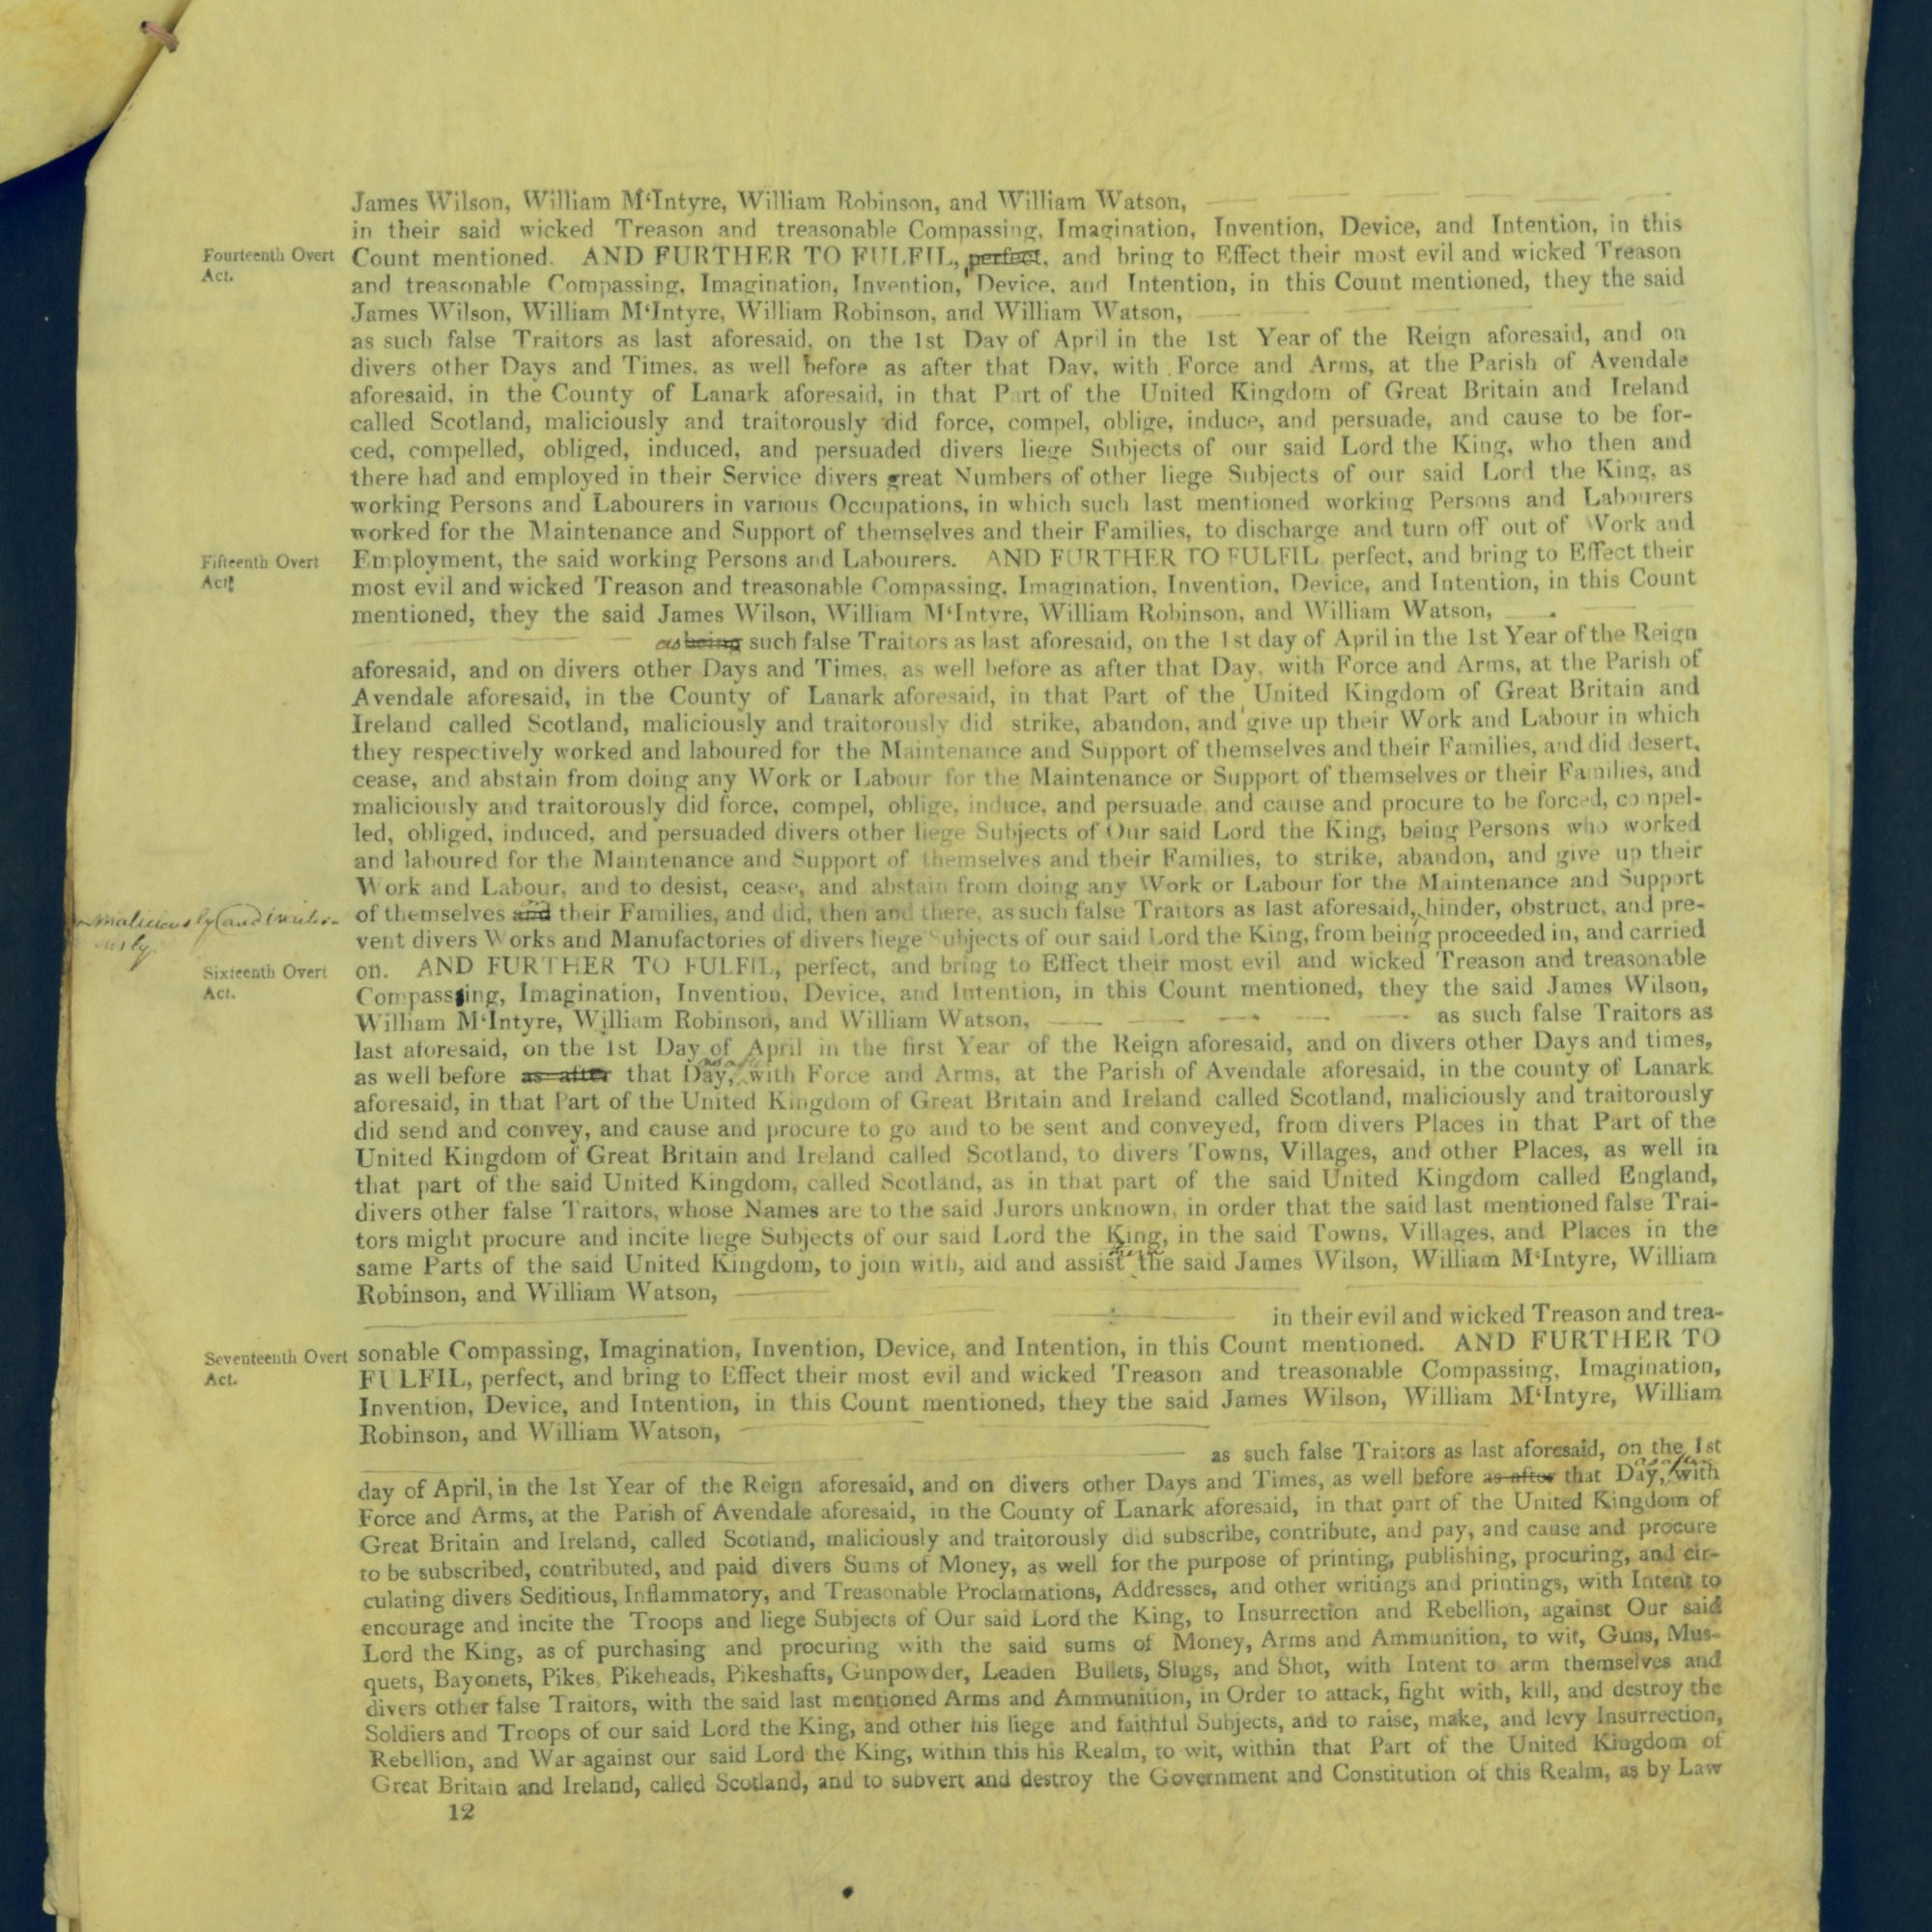 Treason Trials for the County of Lanark, the Strathaven Case. True bills found against four men, James Wilson, William McIntyre, William Robinson and William Watson. National Records of Scotland, Crown copyright, JC21/3/4 p12